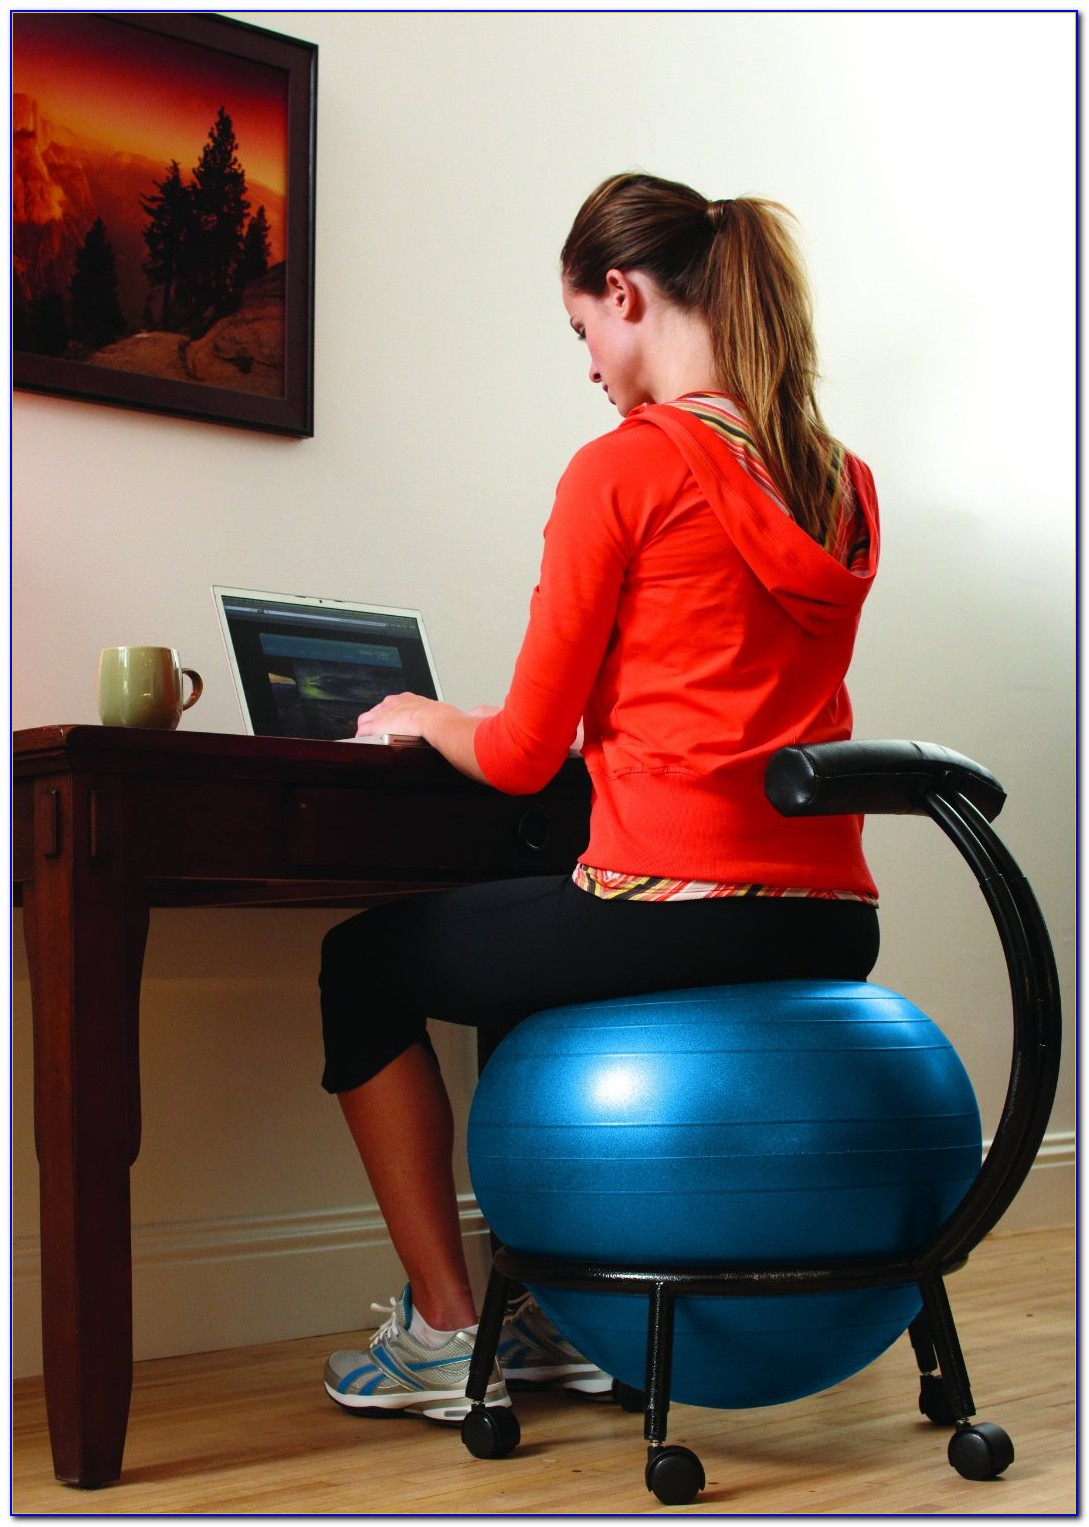 Yoga Ball At Work Desk